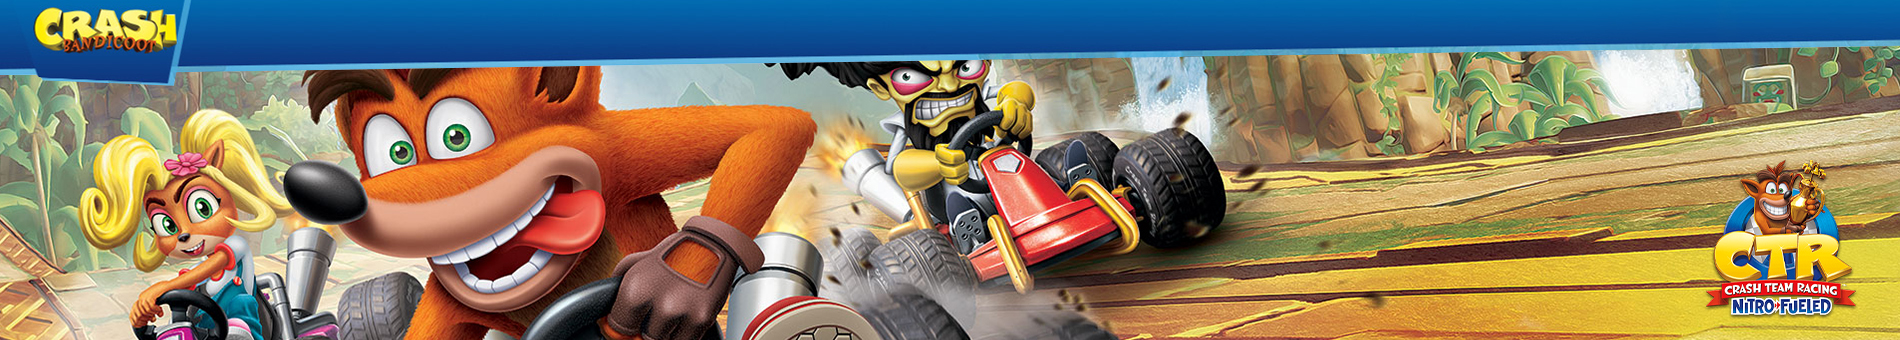 Activision Crash Nitro Racing  Banner 01